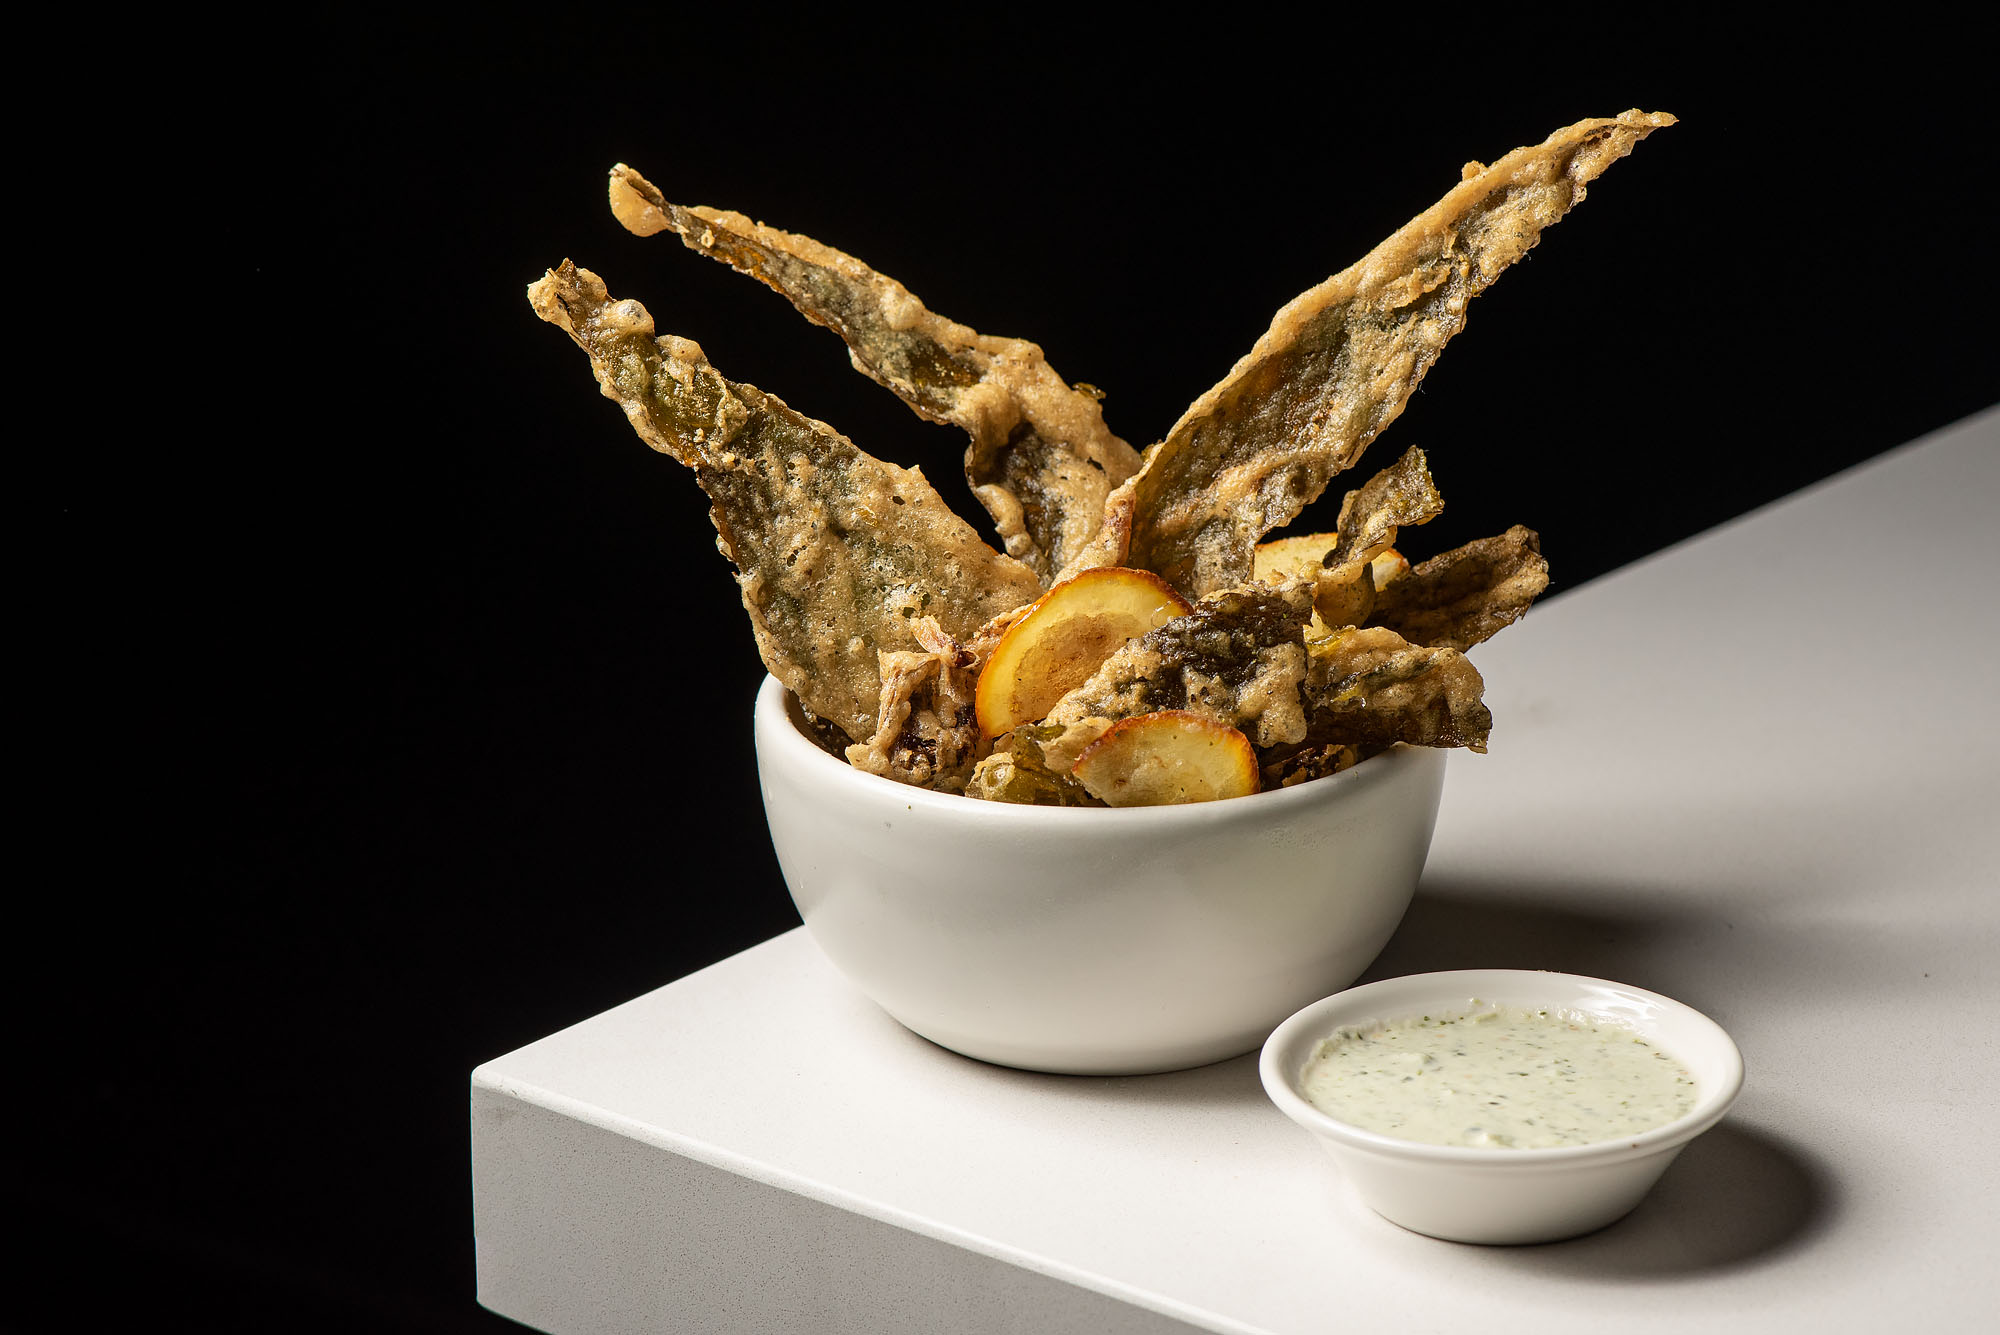 A bowl is filled with spiky pieces of fried kelp, along with a lemon slide, with a dipping sauce.